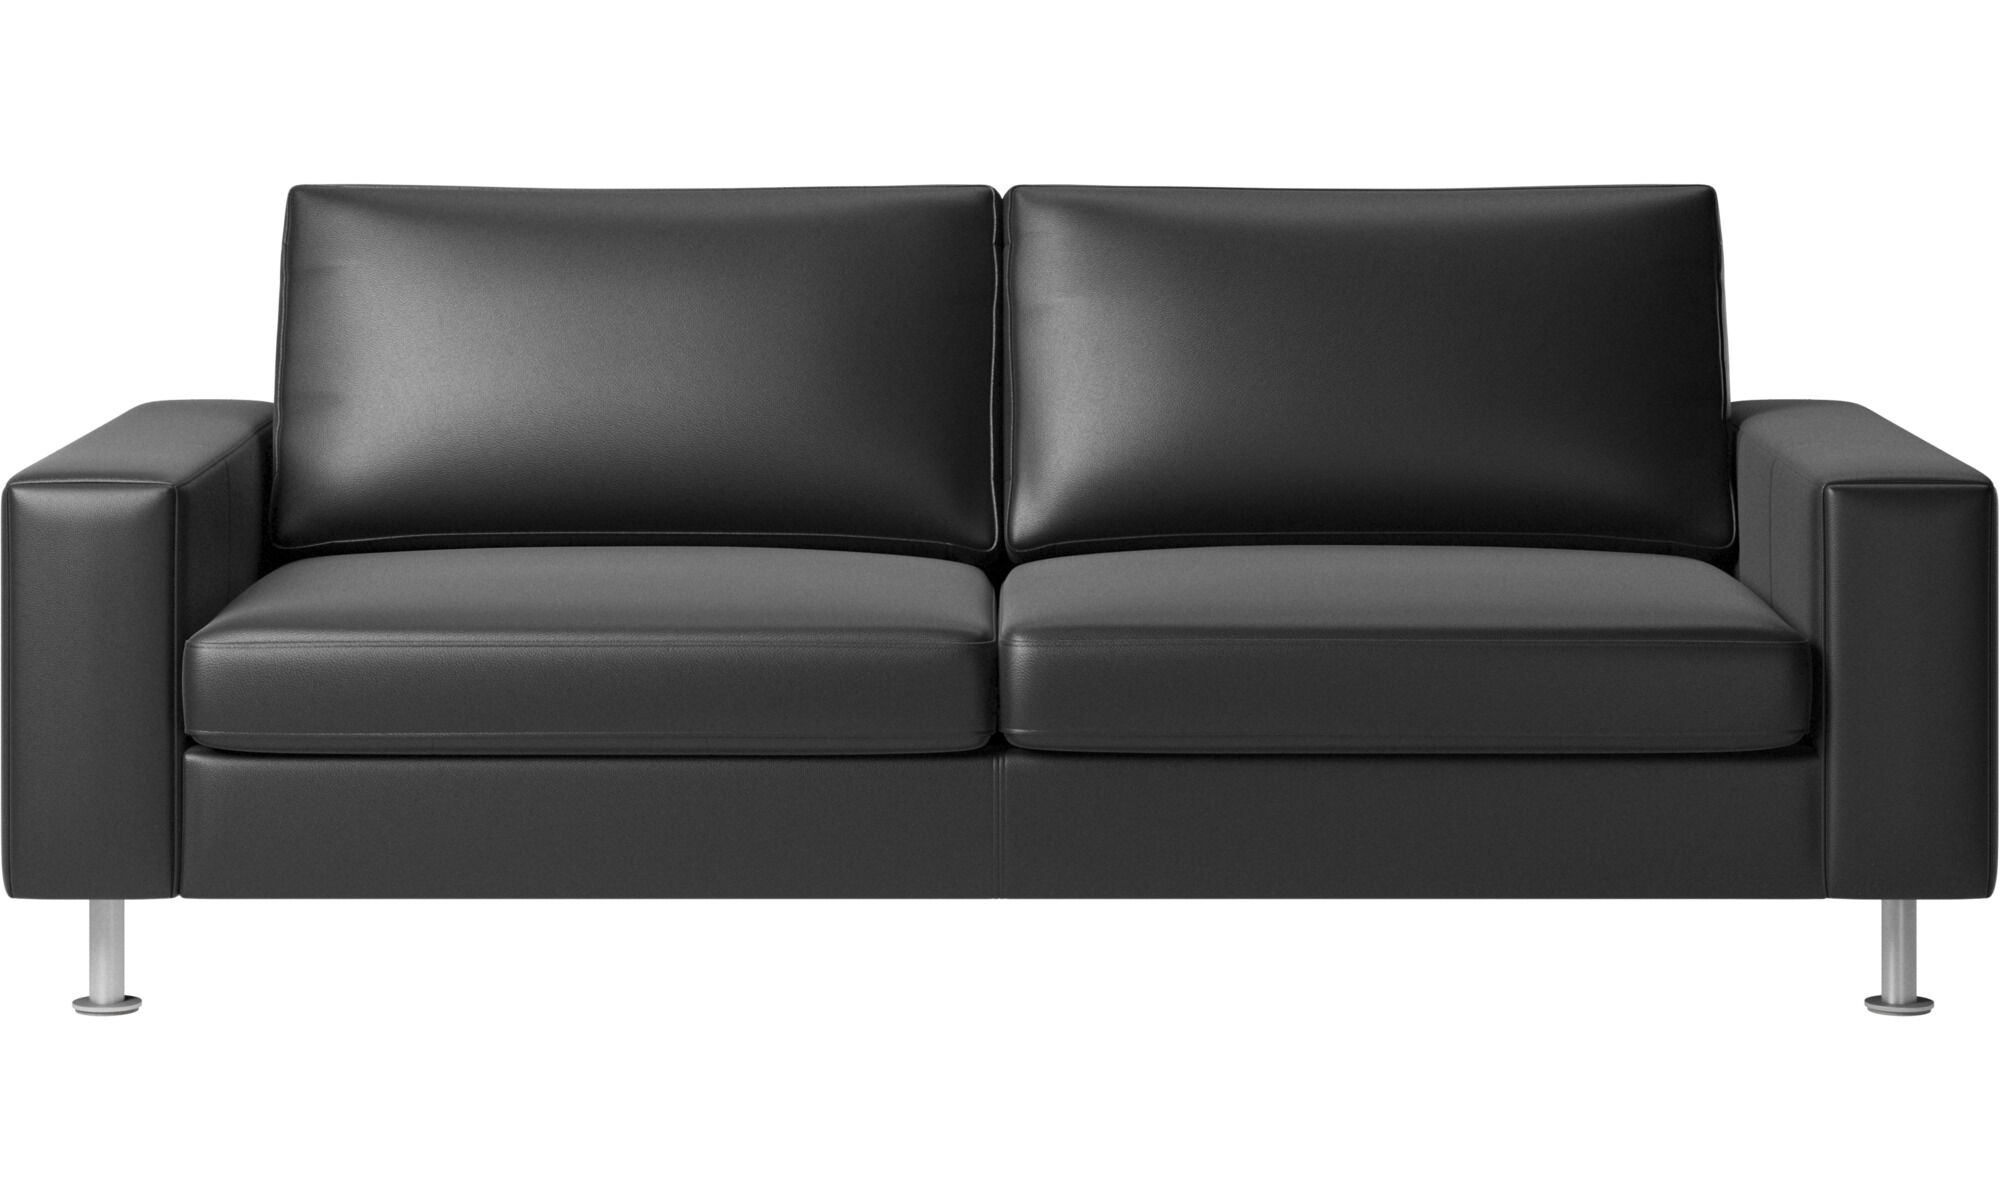 boconcept sleeper sofa review dorris fabric contemporary right chaise sectional set beds quality from indivi bed black leather